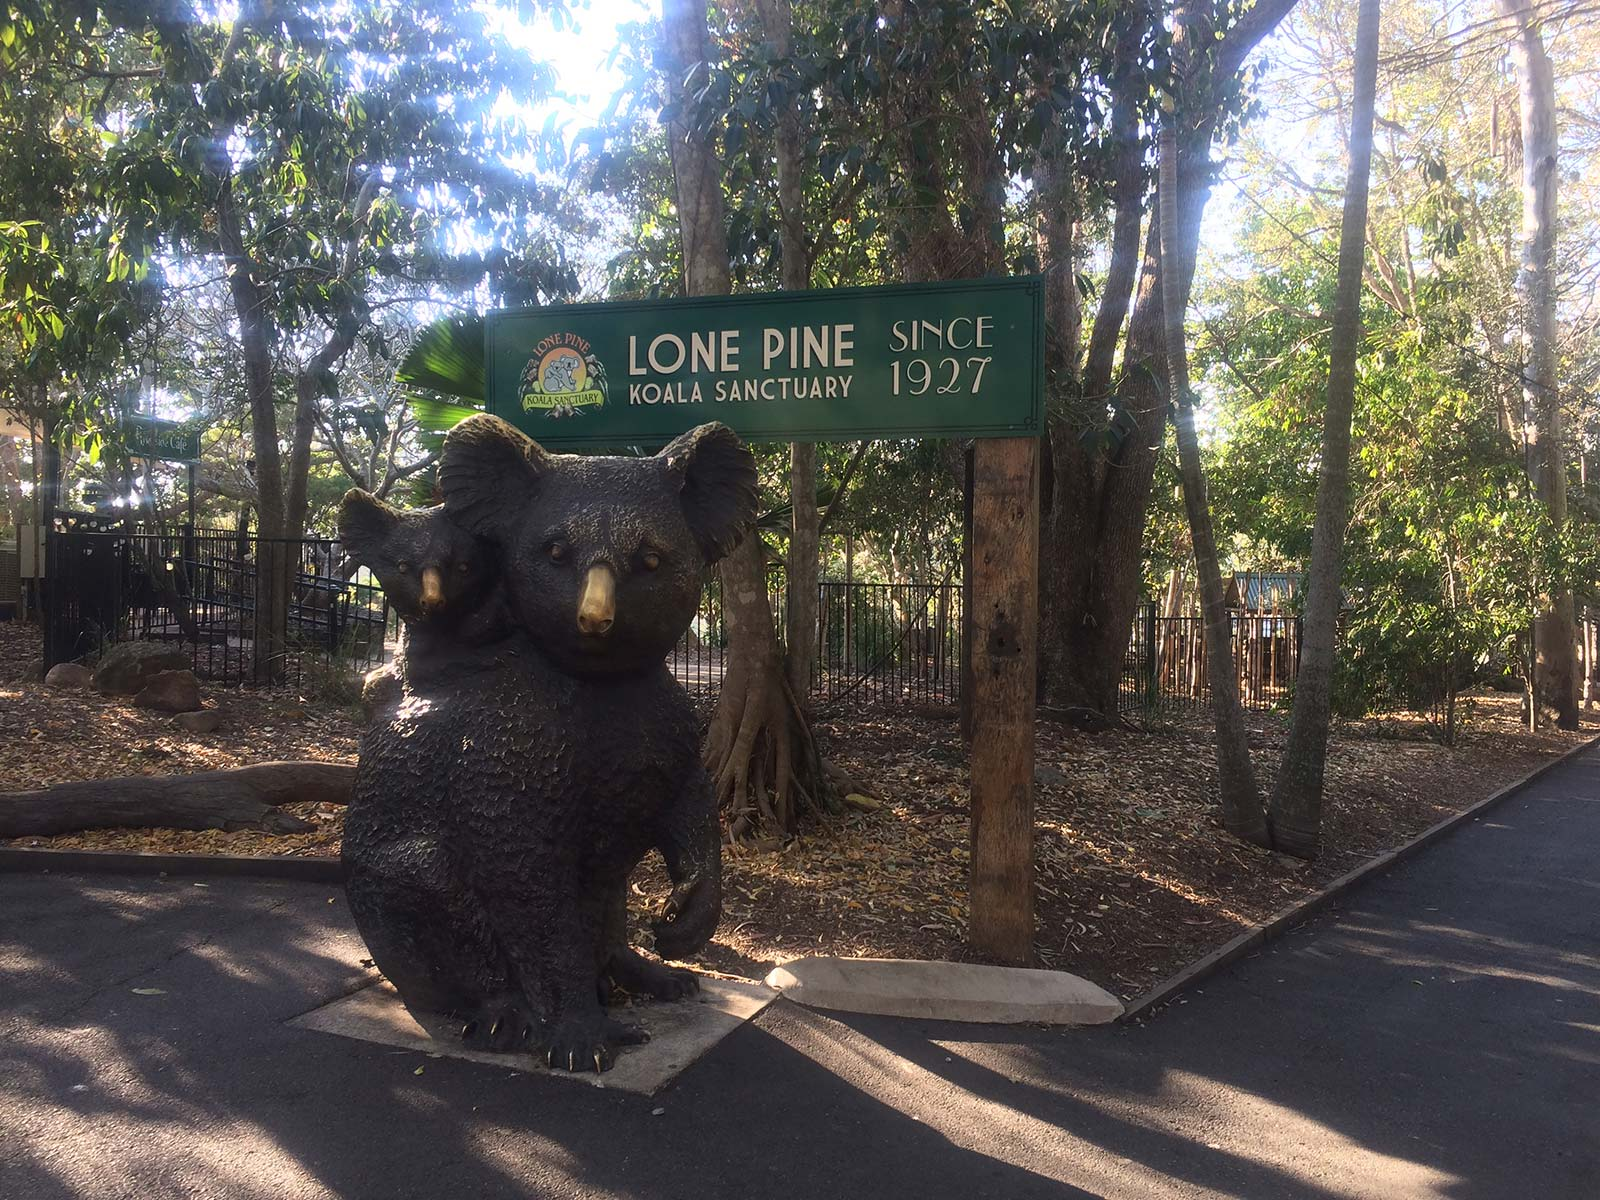 Photograph of the entrance to Lone Pine Koala Sanctuary